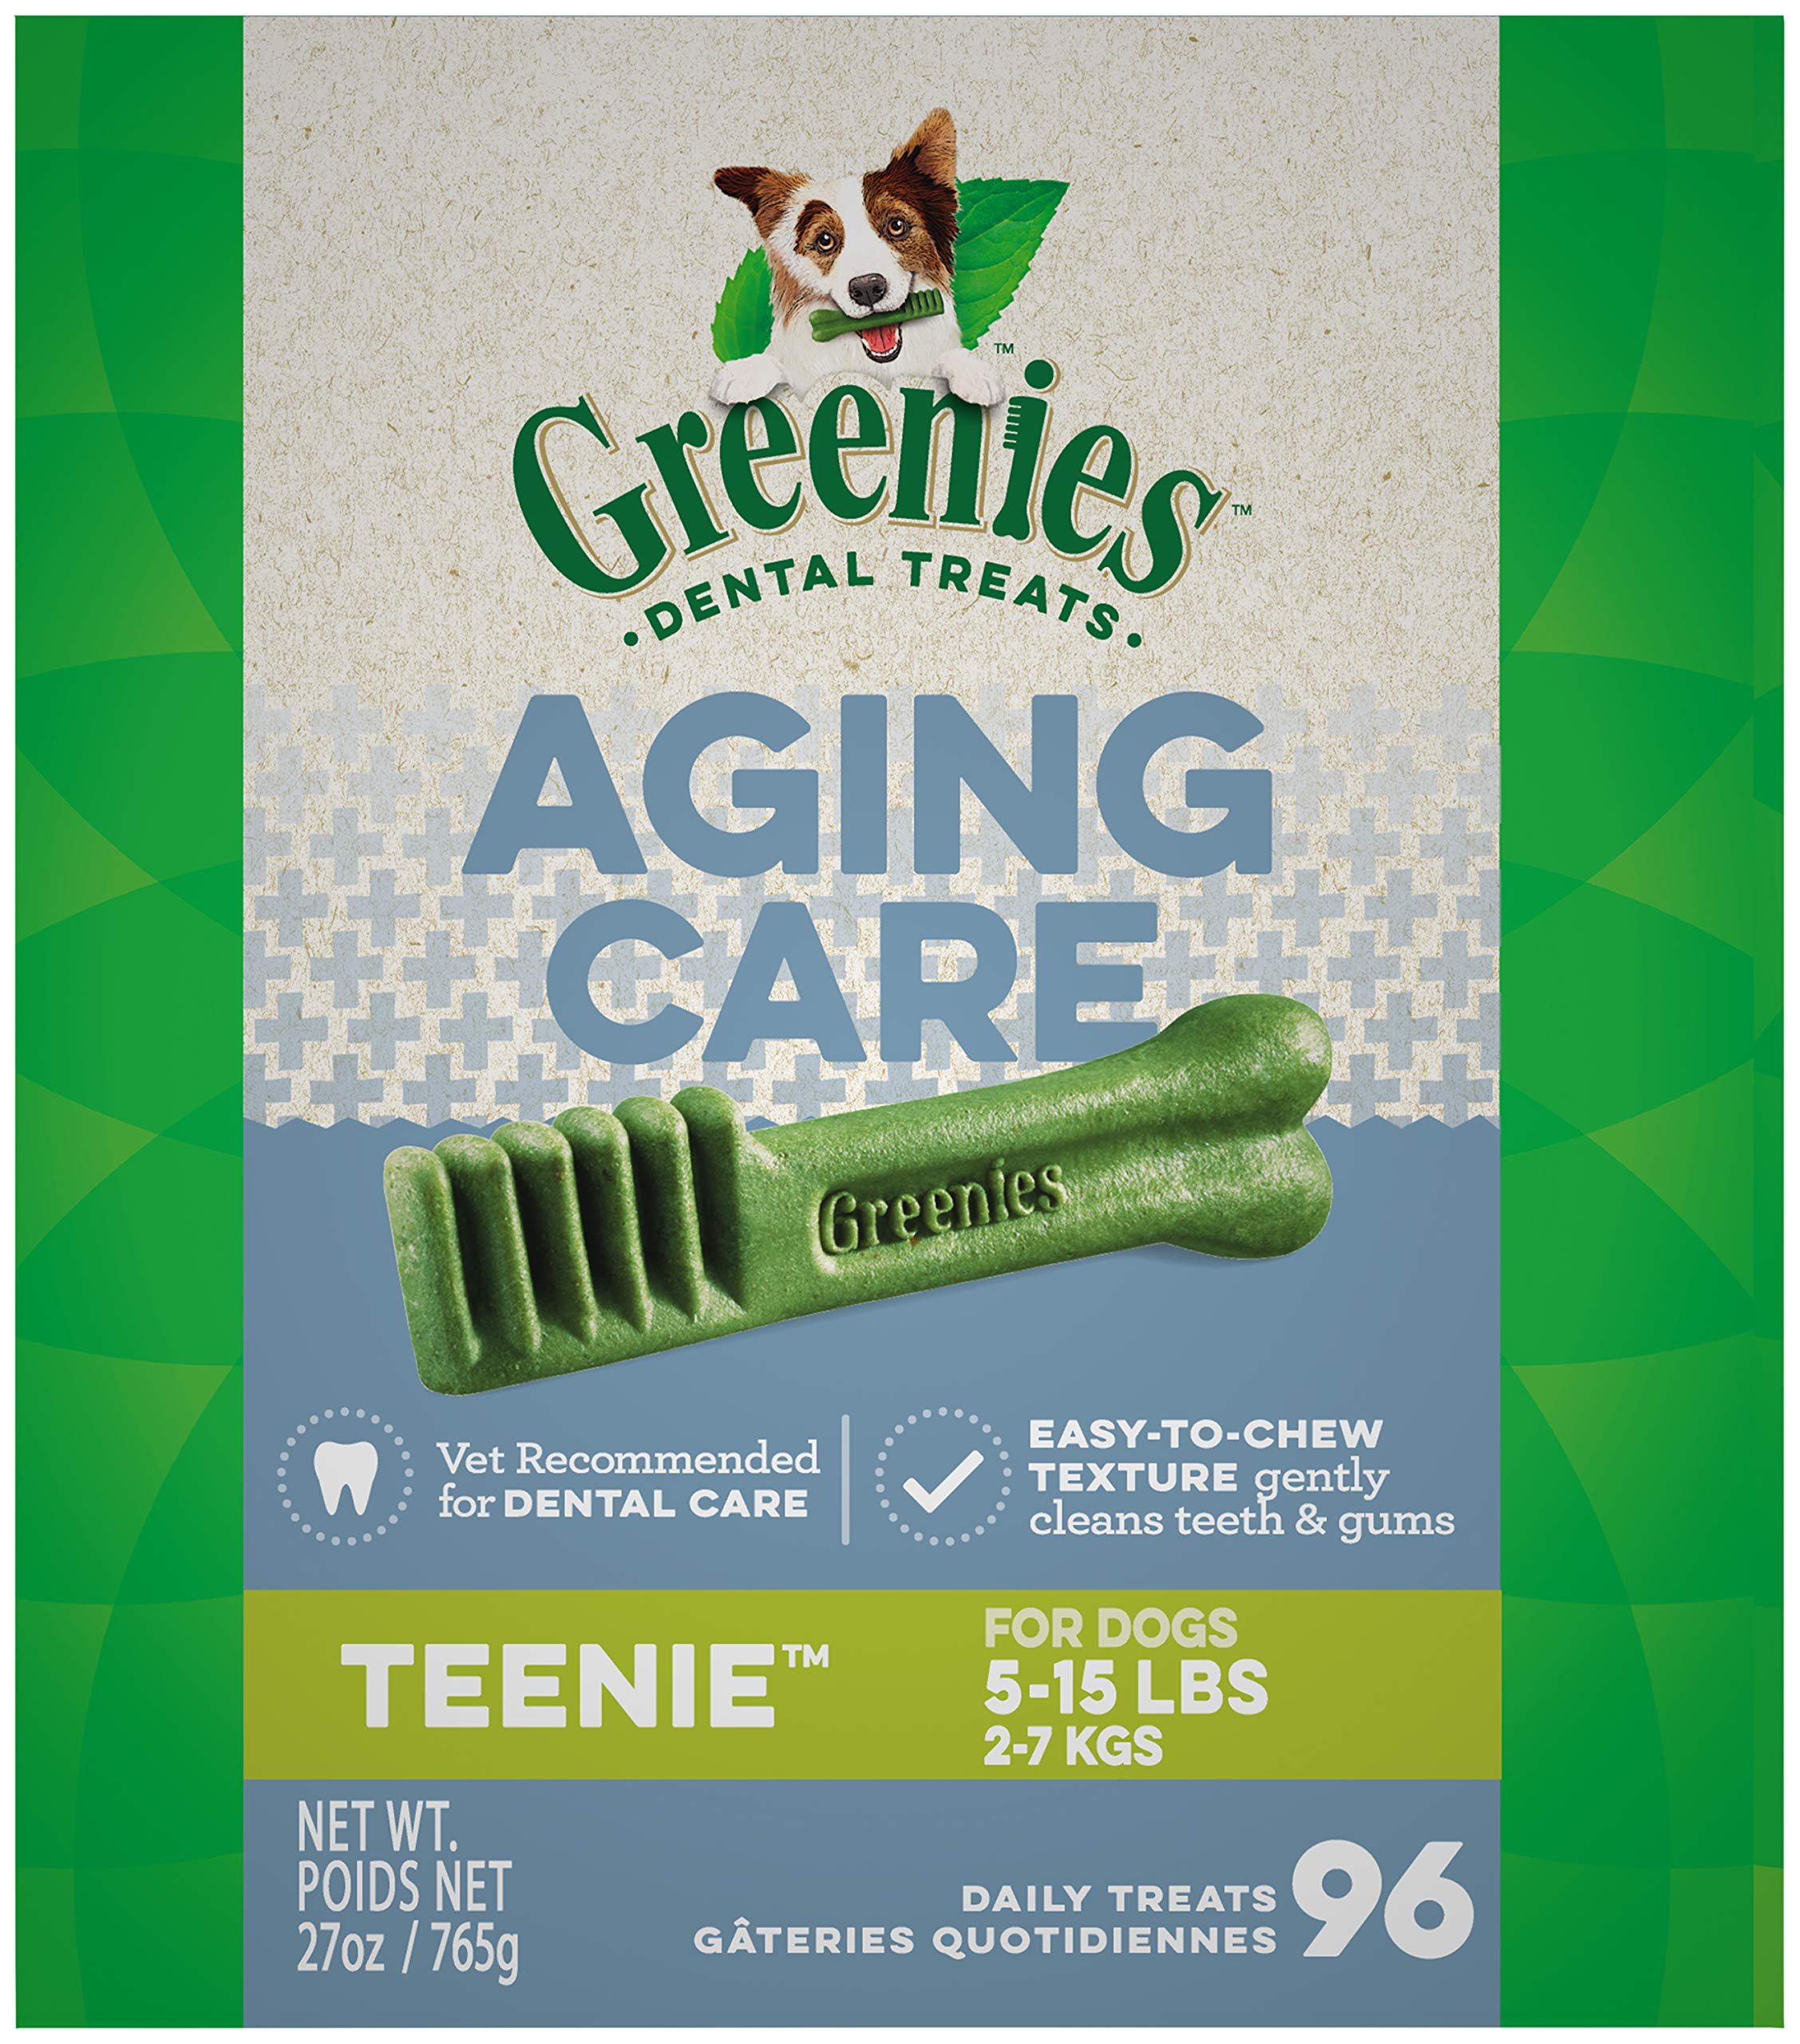 GREENIES Aging Care TEENIE Natural Dog Dental Care Chews Oral Health Dog Treats, 27 oz. Pack (96 Treats) by Greenies